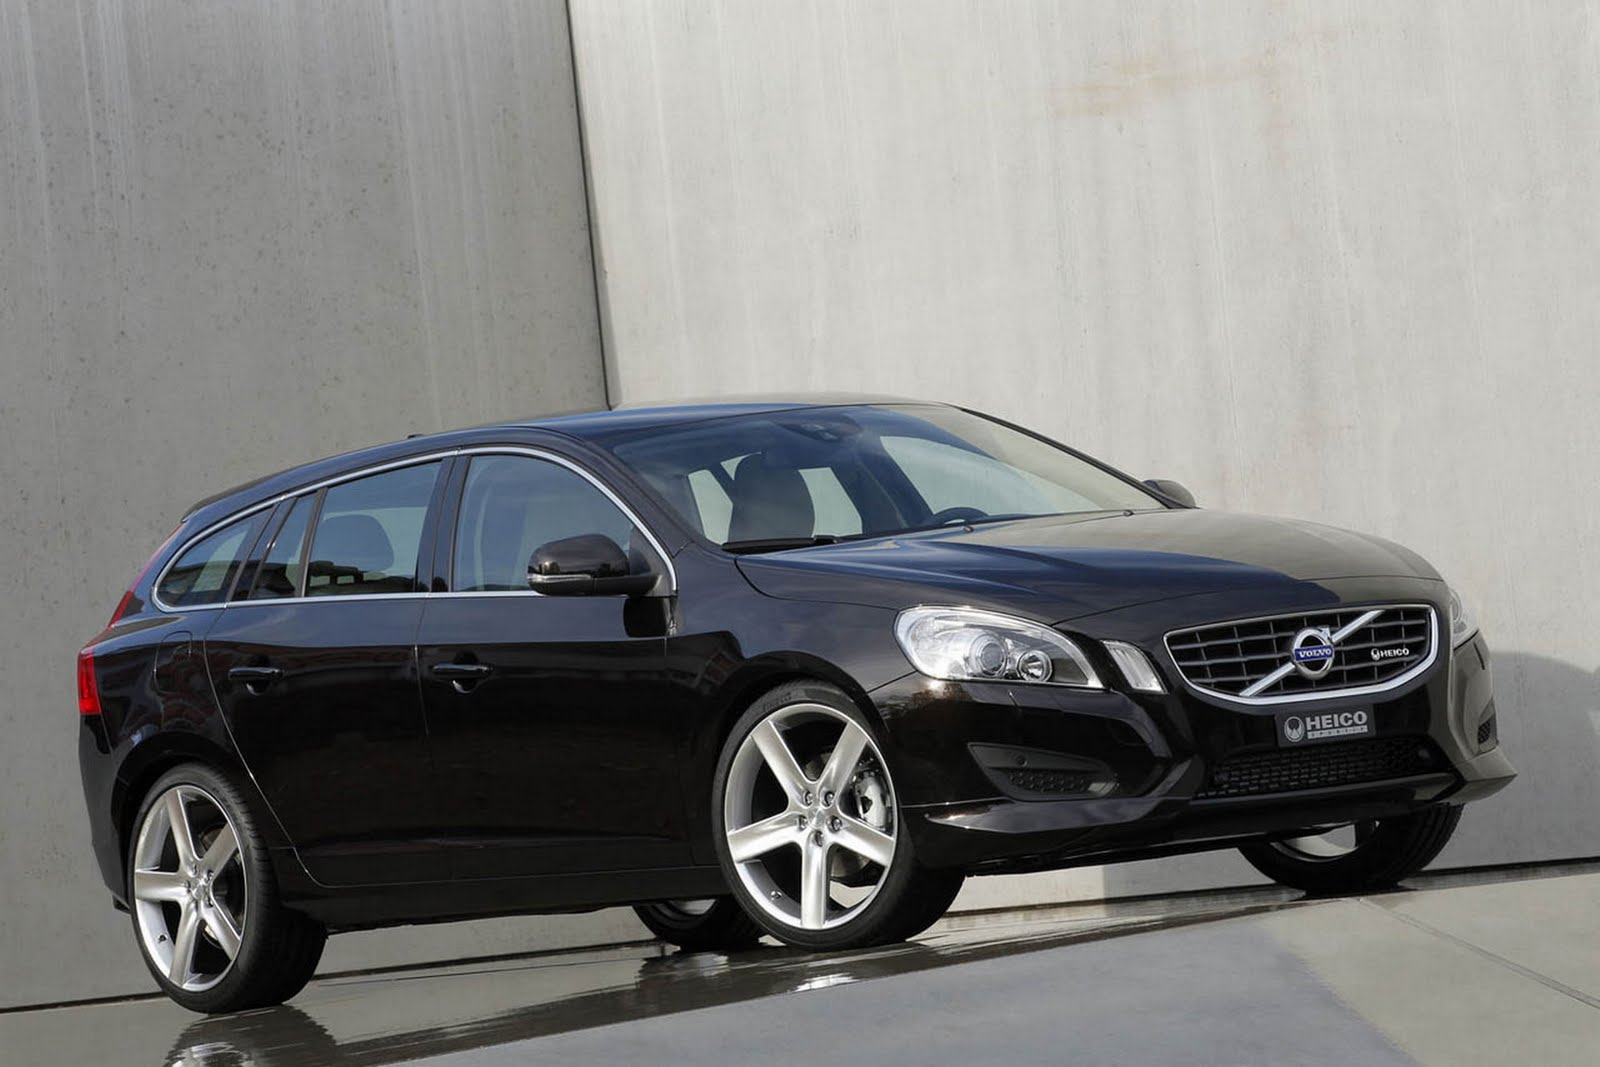 2011 Volvo V60 Launched ~ Vivid Car